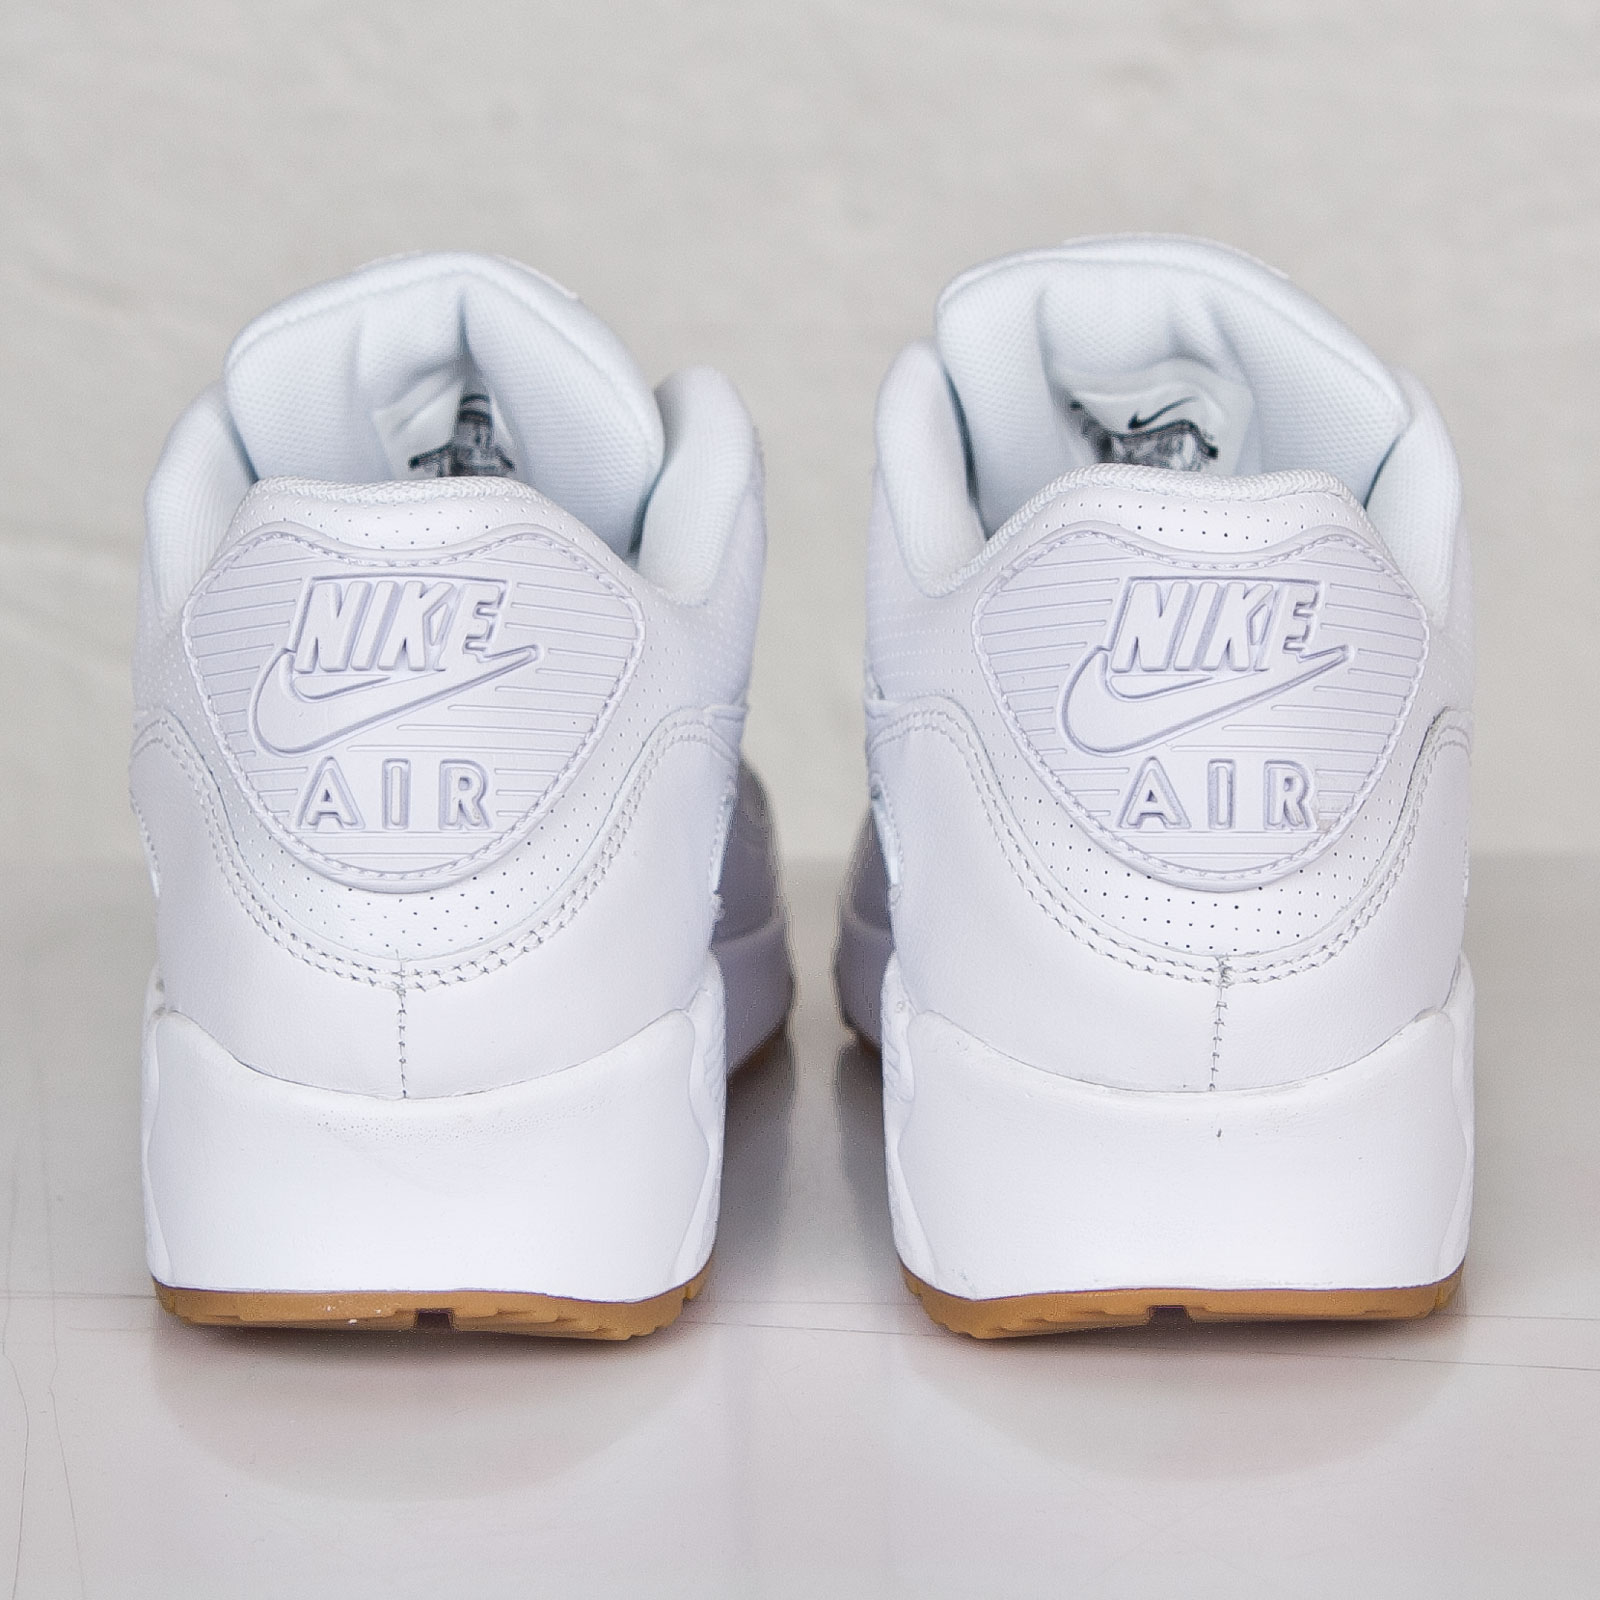 Nike Air Max 90 Leather PA 705012 111 Sneakersnstuff